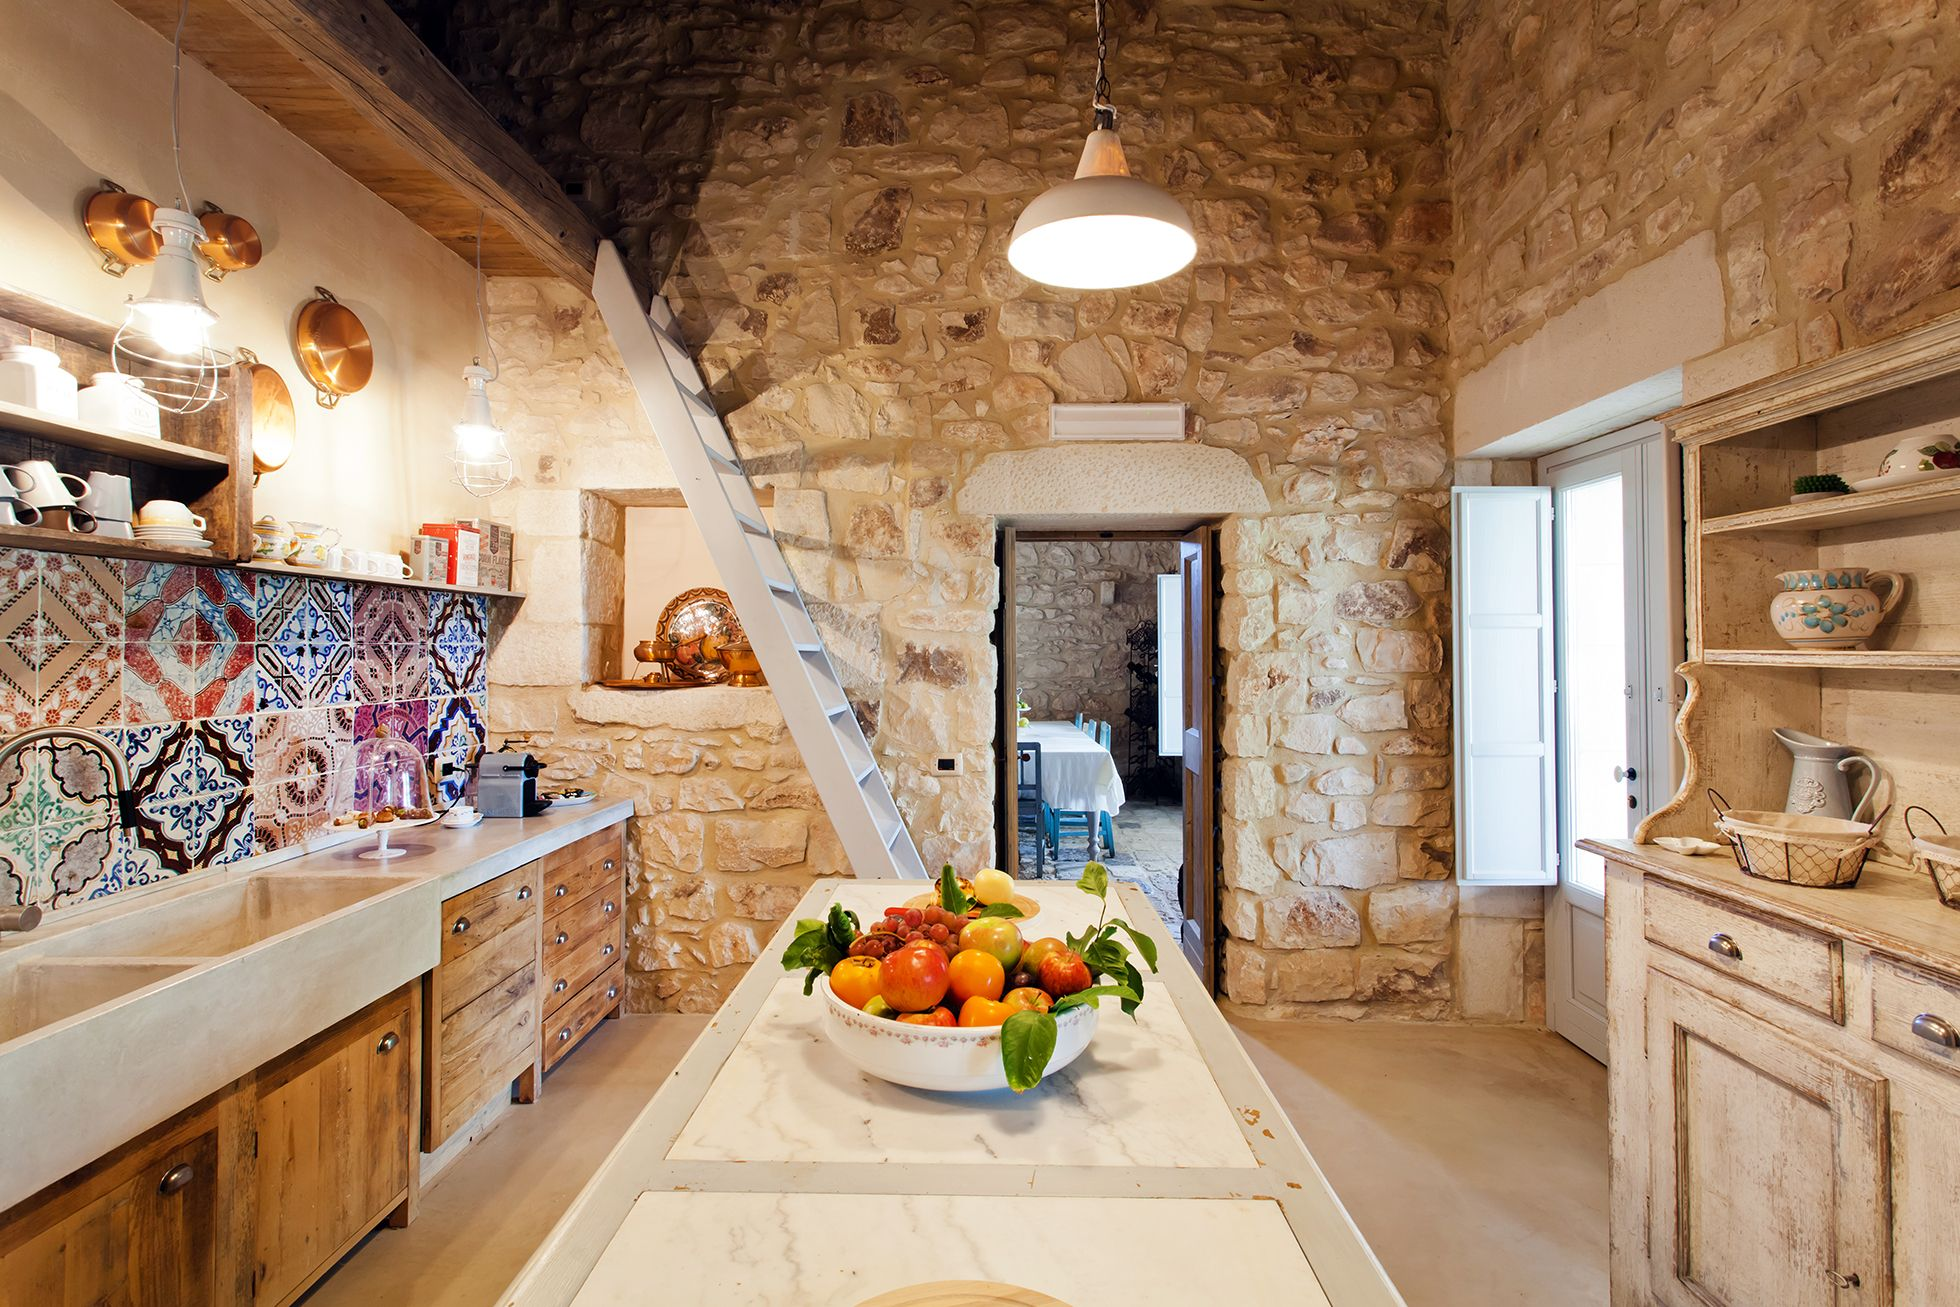 Cucina Rustica Meaning The Characterful Kitchen Of Masseria D Estia With Its Beautiful